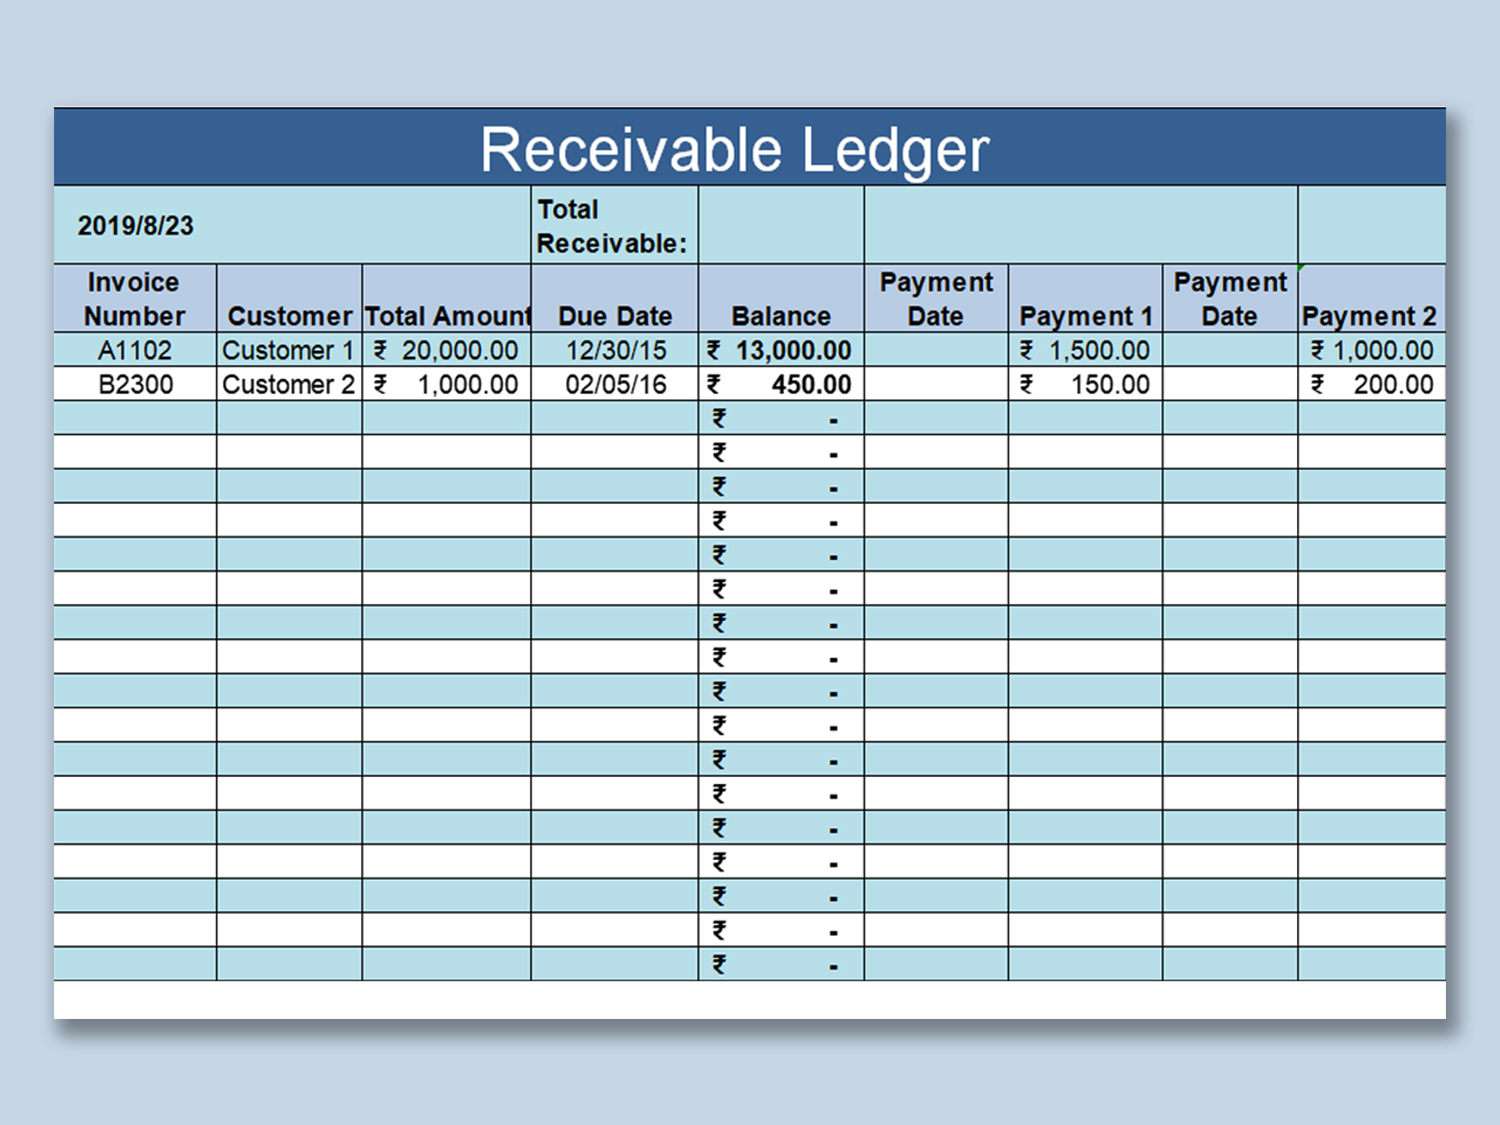 Accounts Payable Ledger Template from d4z1onkegyrs5.cloudfront.net